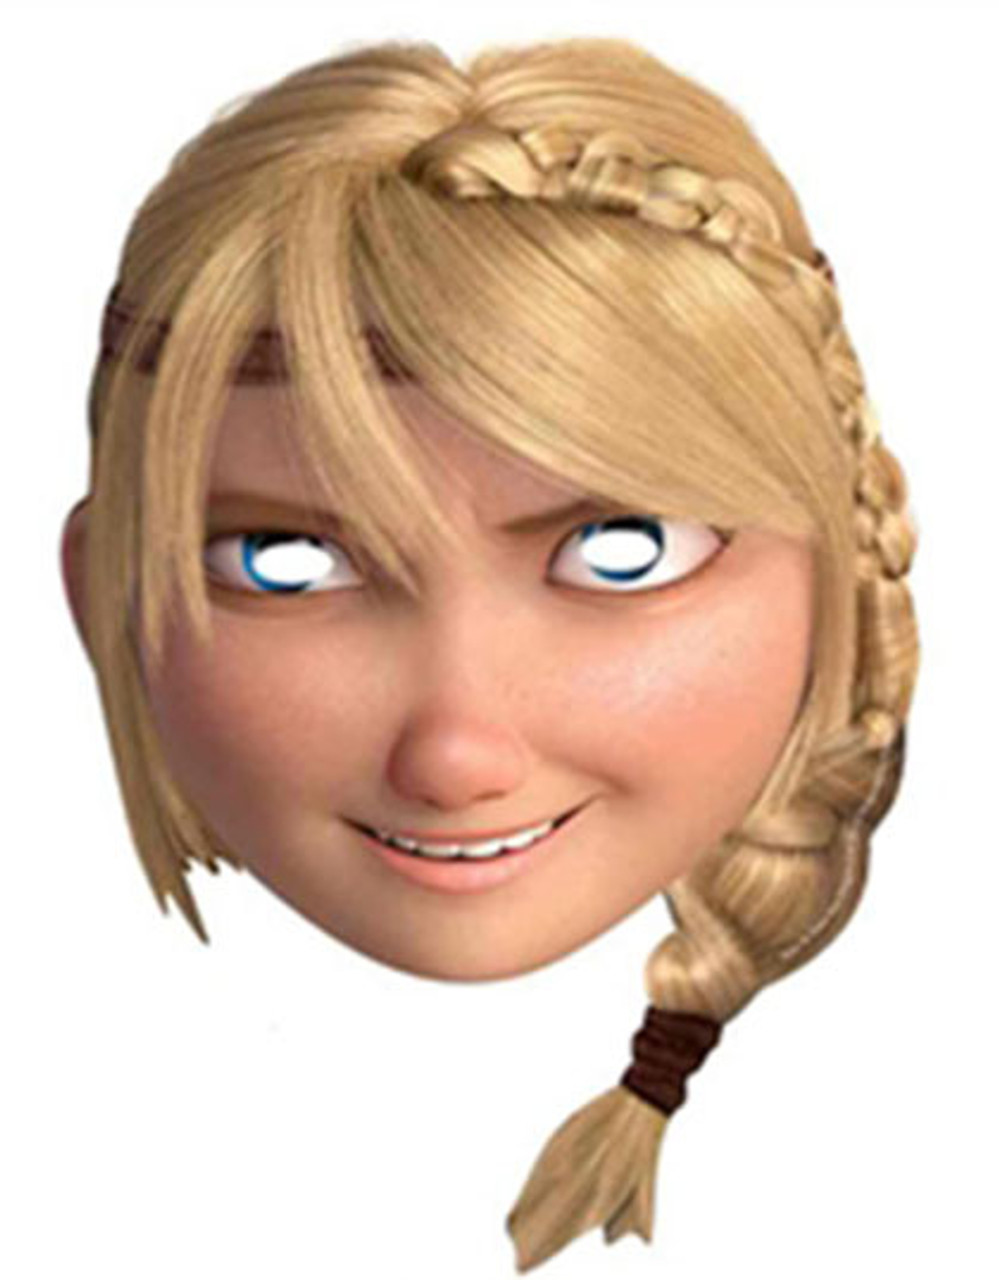 Astrid How To Train Your Dragon 2 Party Face Mask Available Now At Starstills Com